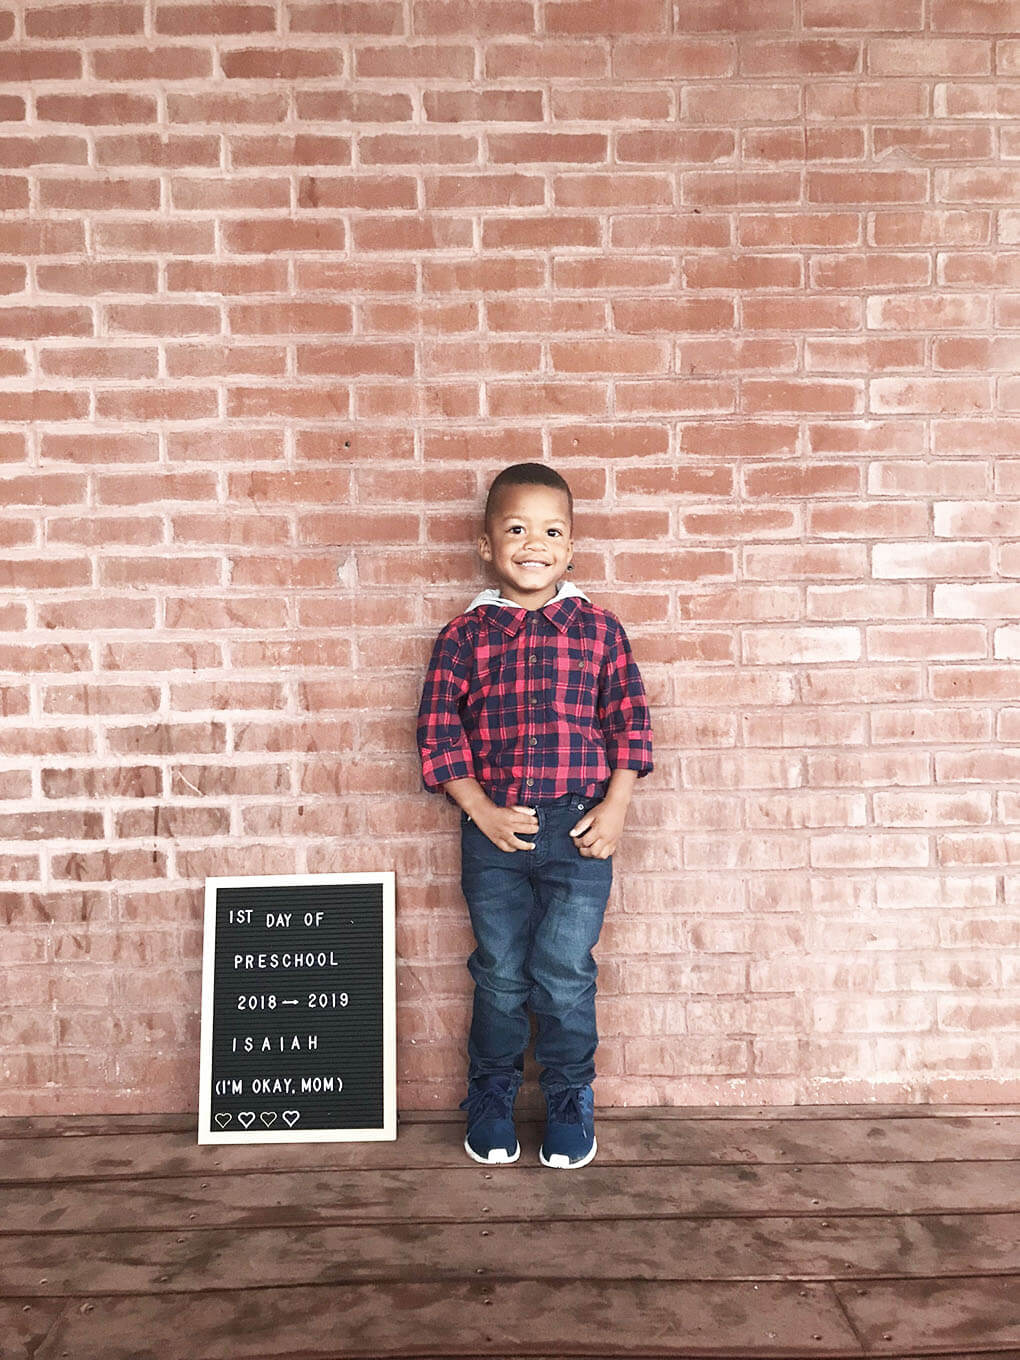 Preschool Mom www.sarahkayhoffman.com Isaiah first day #preschool #lifestyleblogger #firstdayofschool